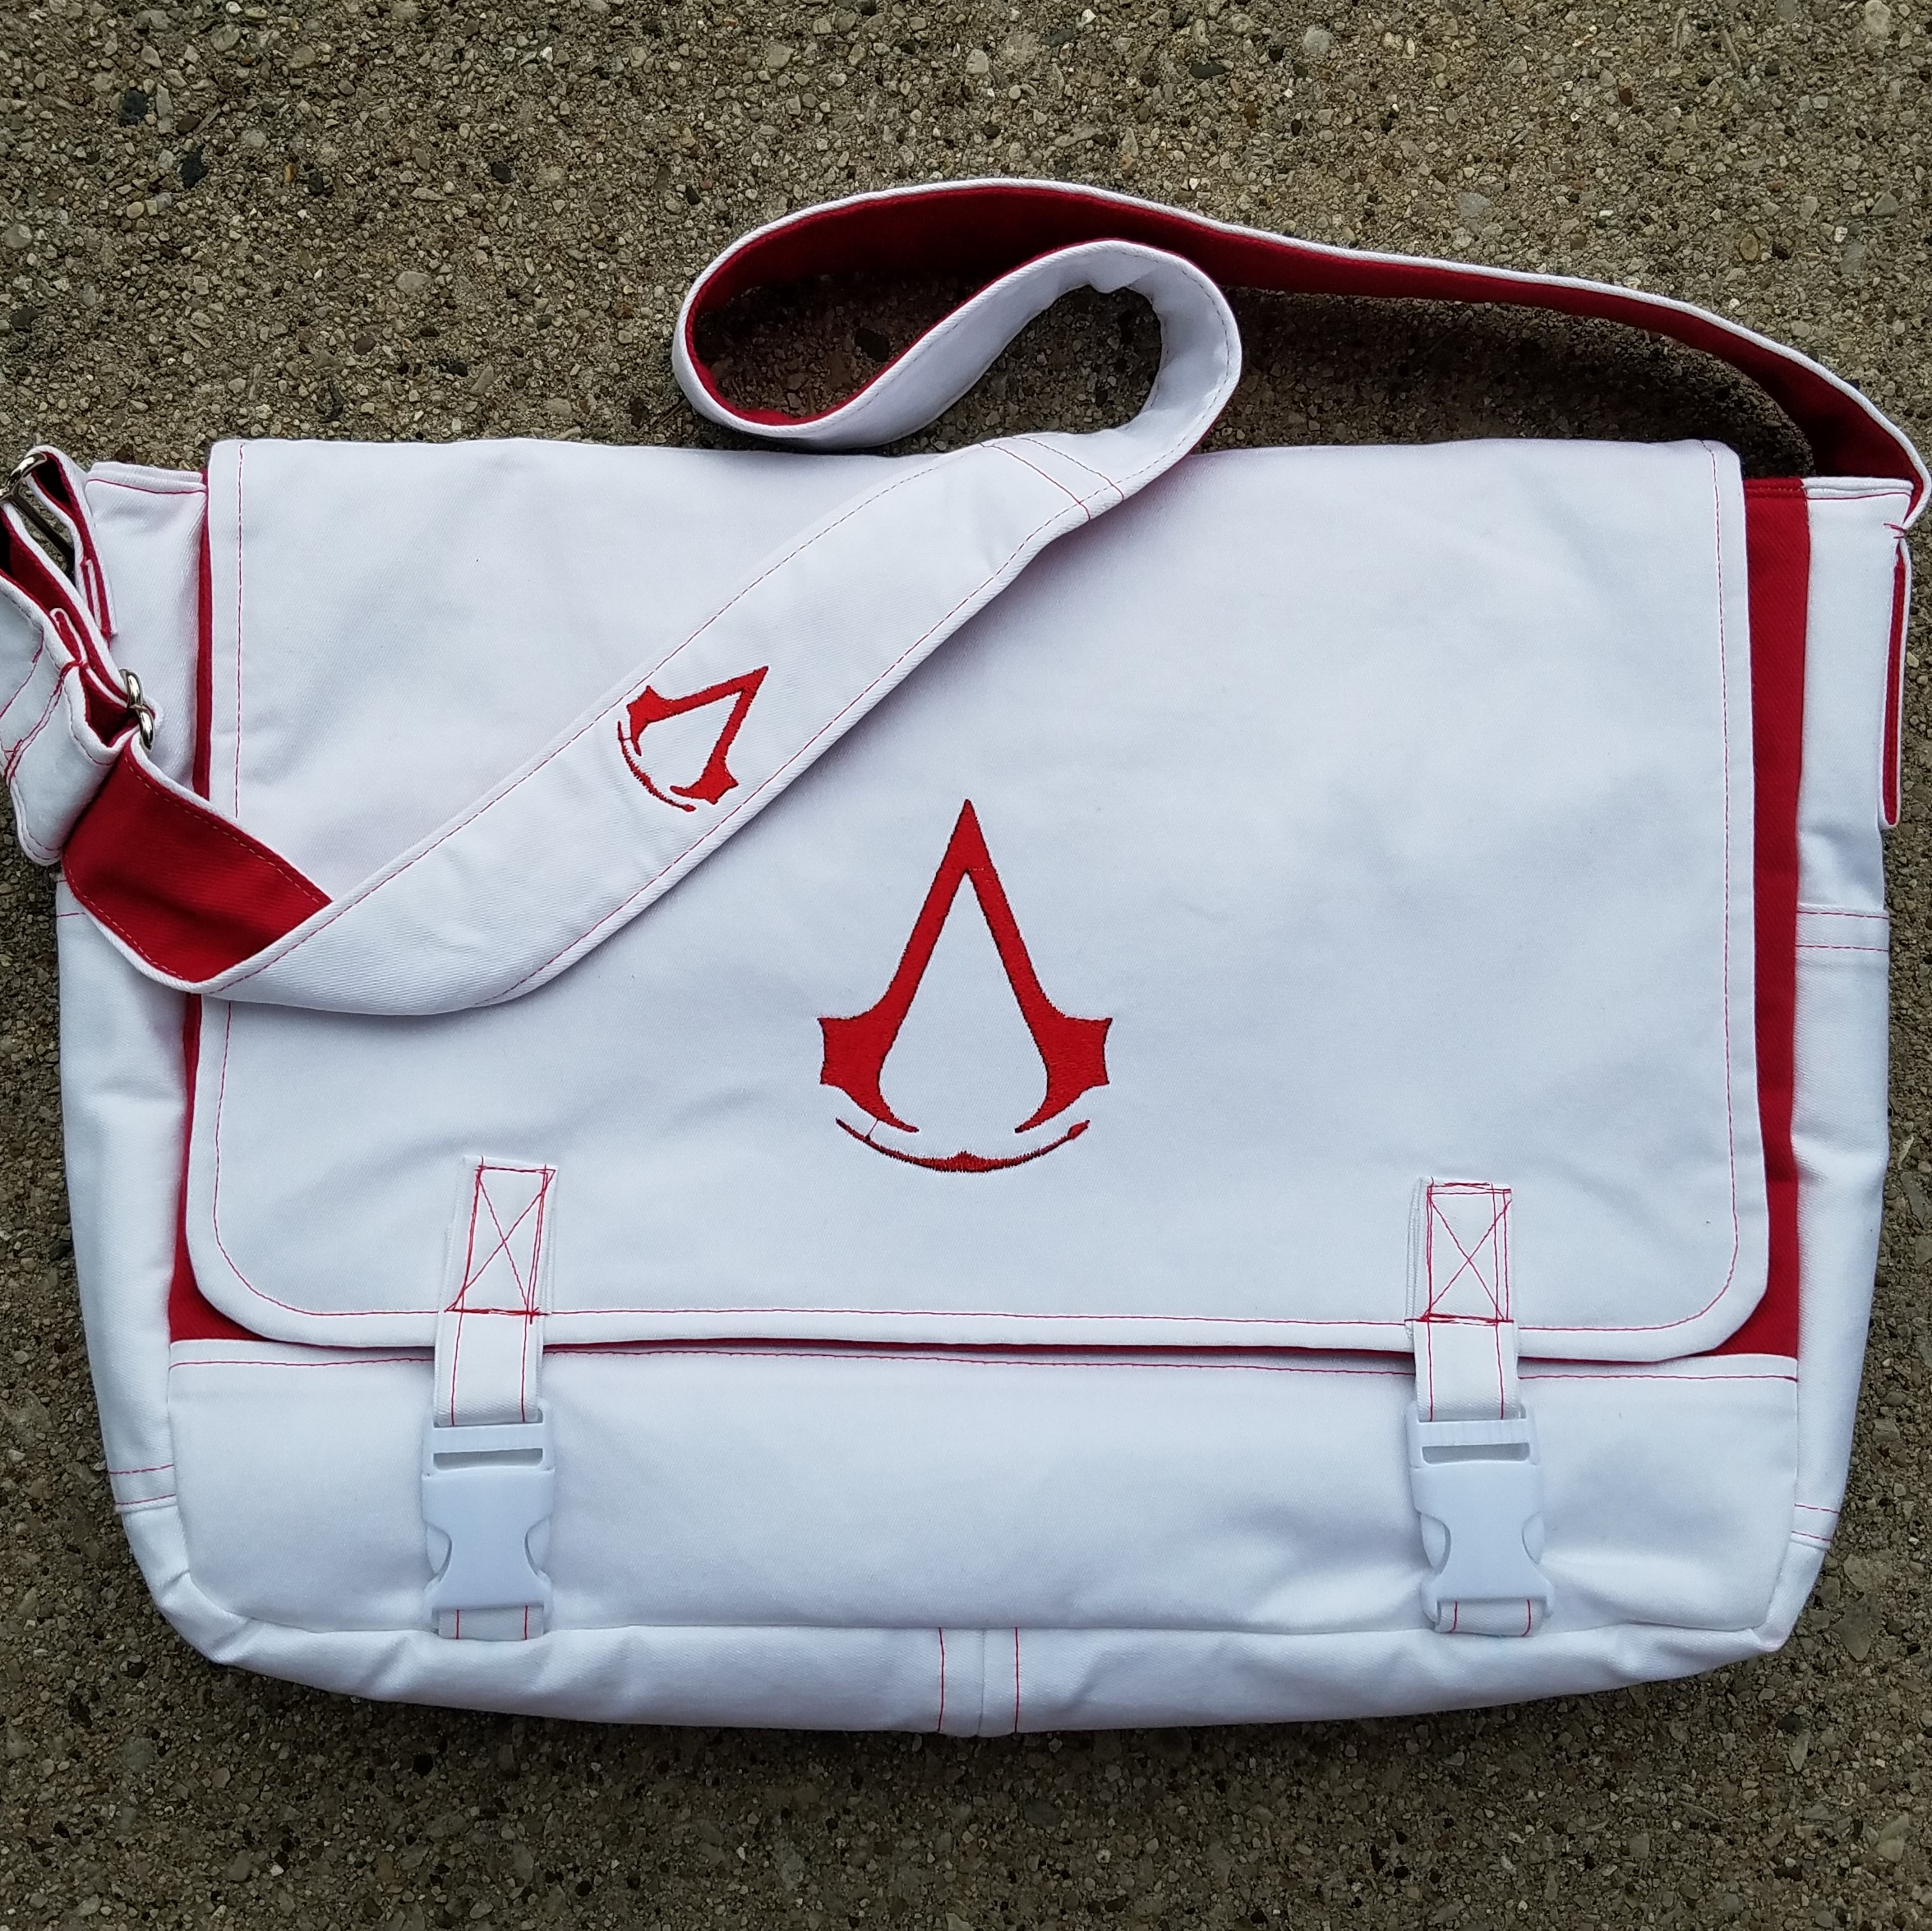 Tock Custom - Assassin's Creed Bag